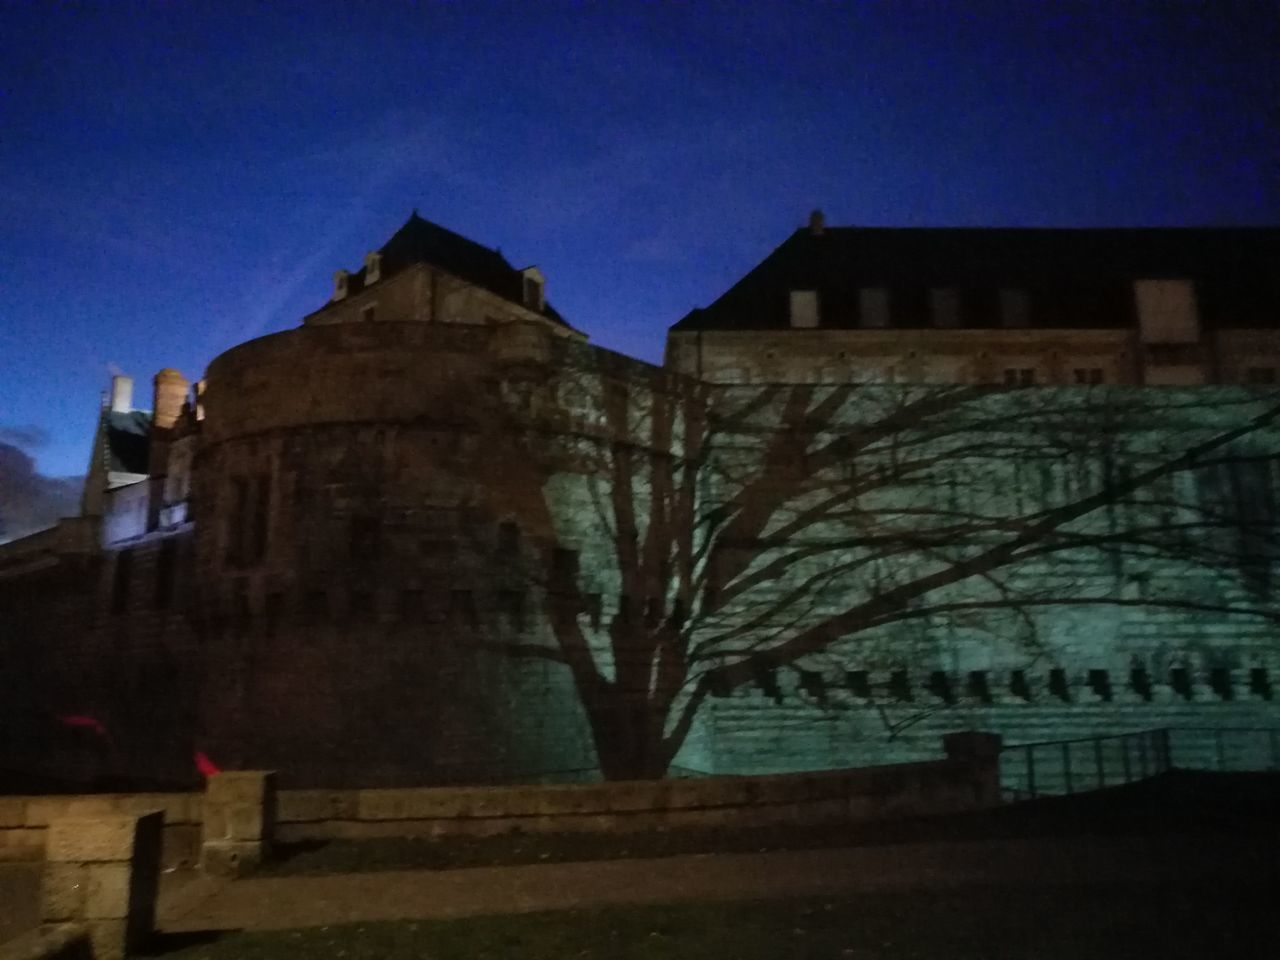 Nantes Architecture No People Sky Landscape Tranquil Scene Night Castel Popular Photos Outdoors Cloud - Sky CaptureTheMoment Shadows On The Wall